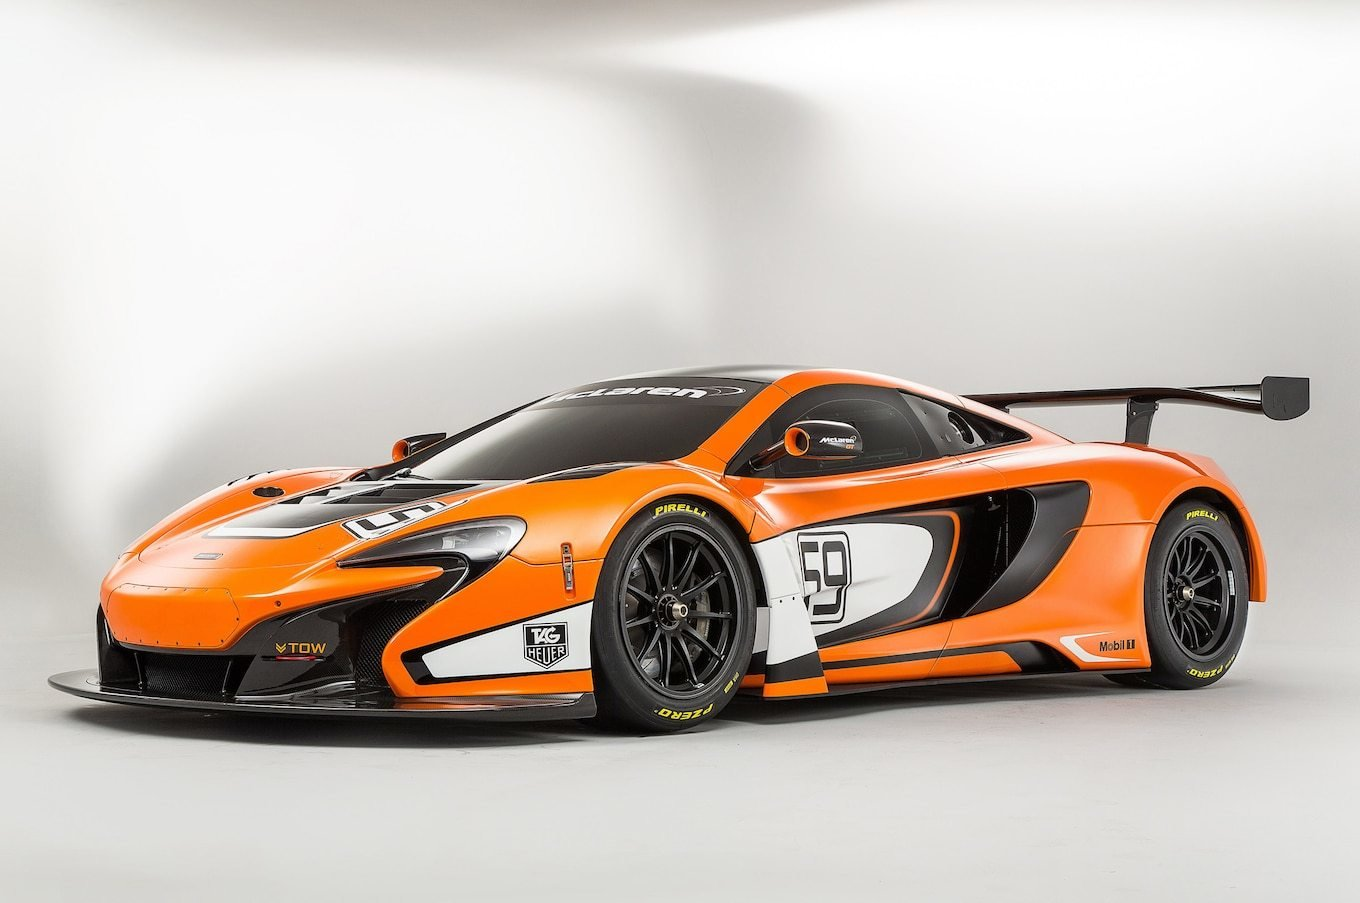 New Mclaren 650S Gt3 Race Car Revealed At Goodwood Motor On This Month